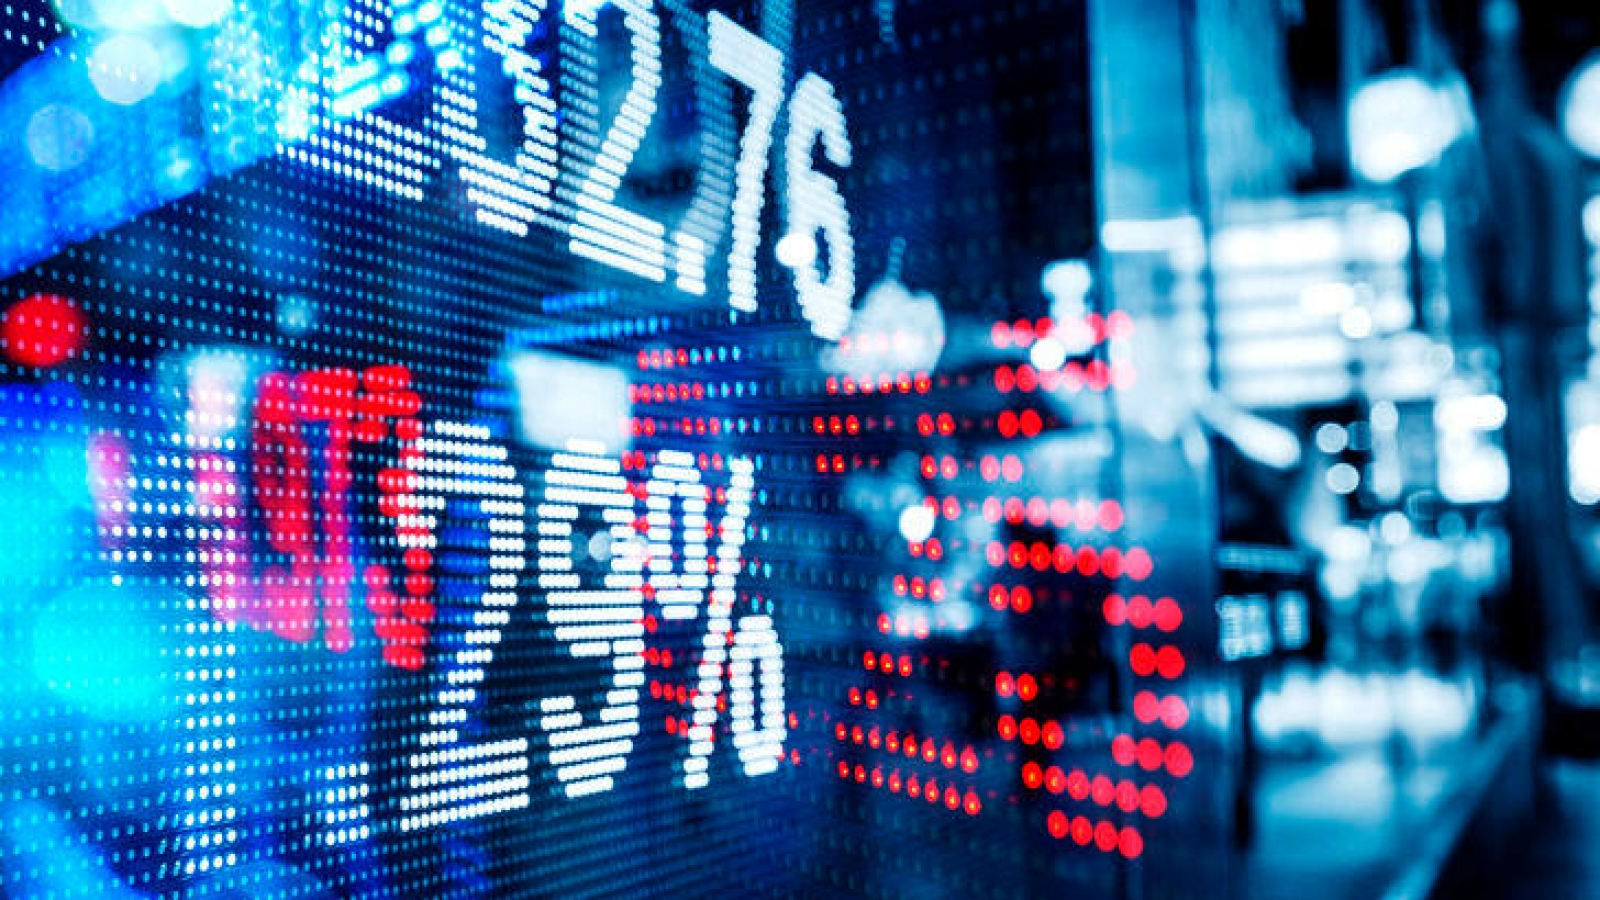 display-stock-market-numbers-and-graph